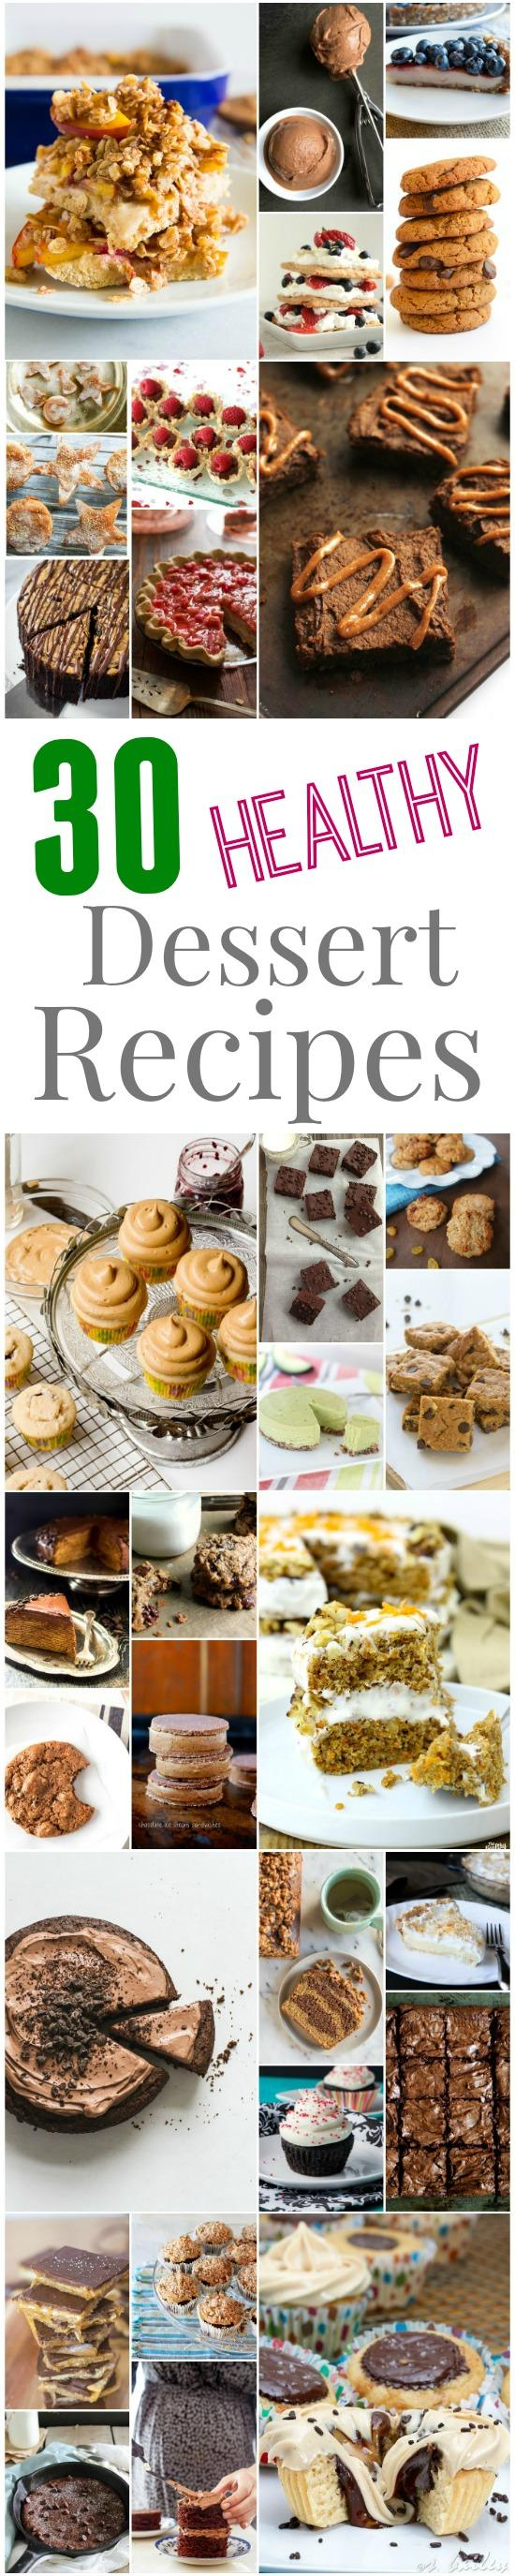 Looking for some new healthy dessert recipes? Here are 30 delicious dessert recipes from some of the best food bloggers around!